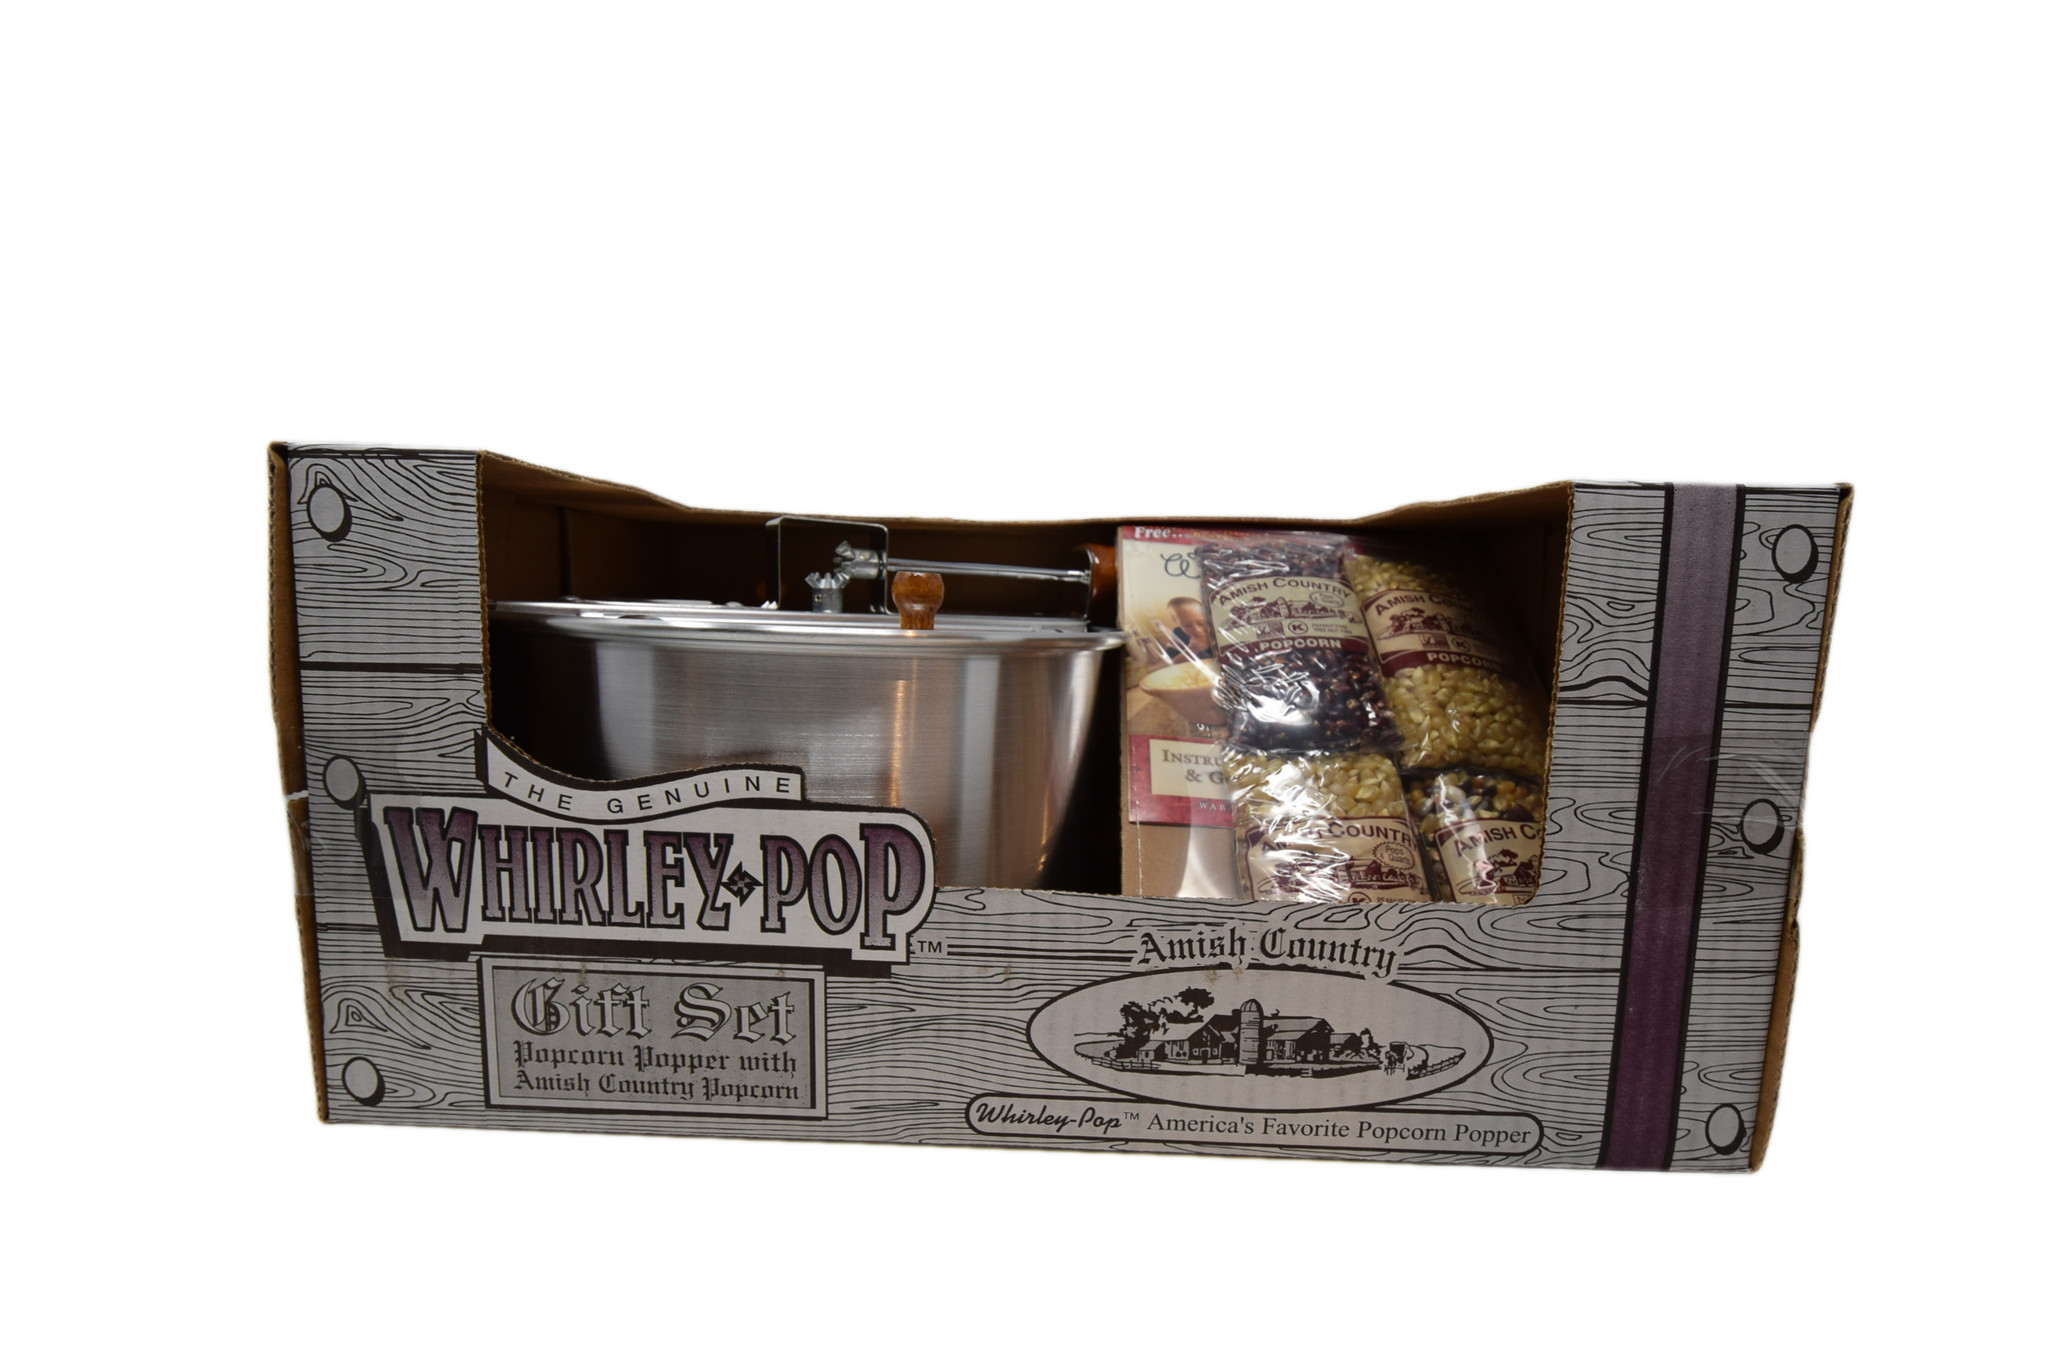 Whirly popper with 4, 4oz popcorns-2